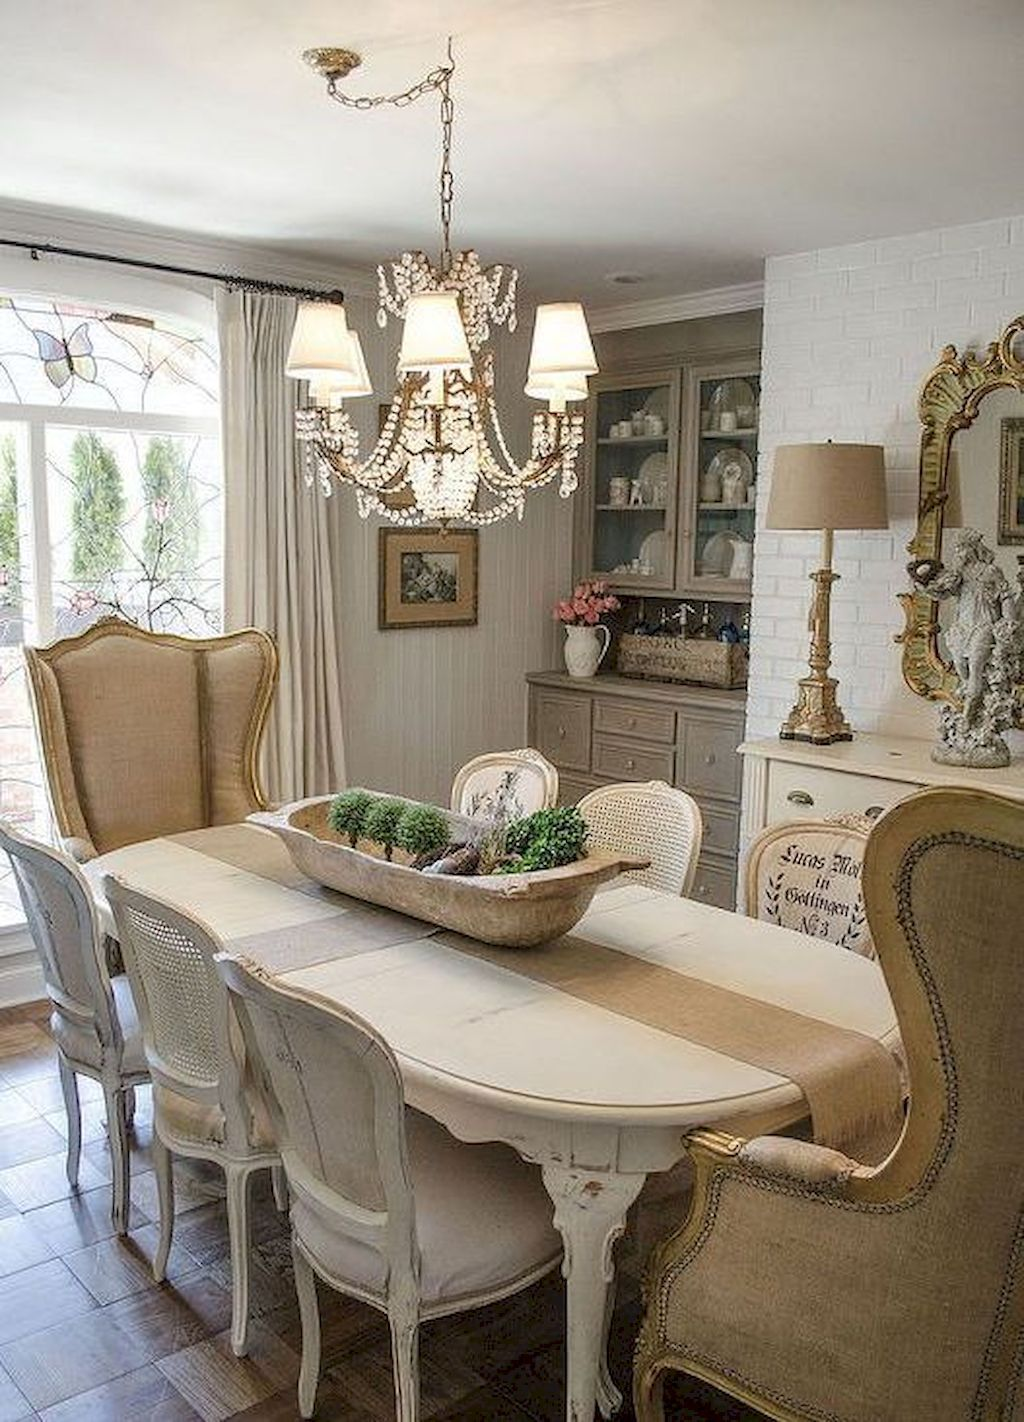 34 Awesome French Country Dining Room Decor Ideas | French country ...